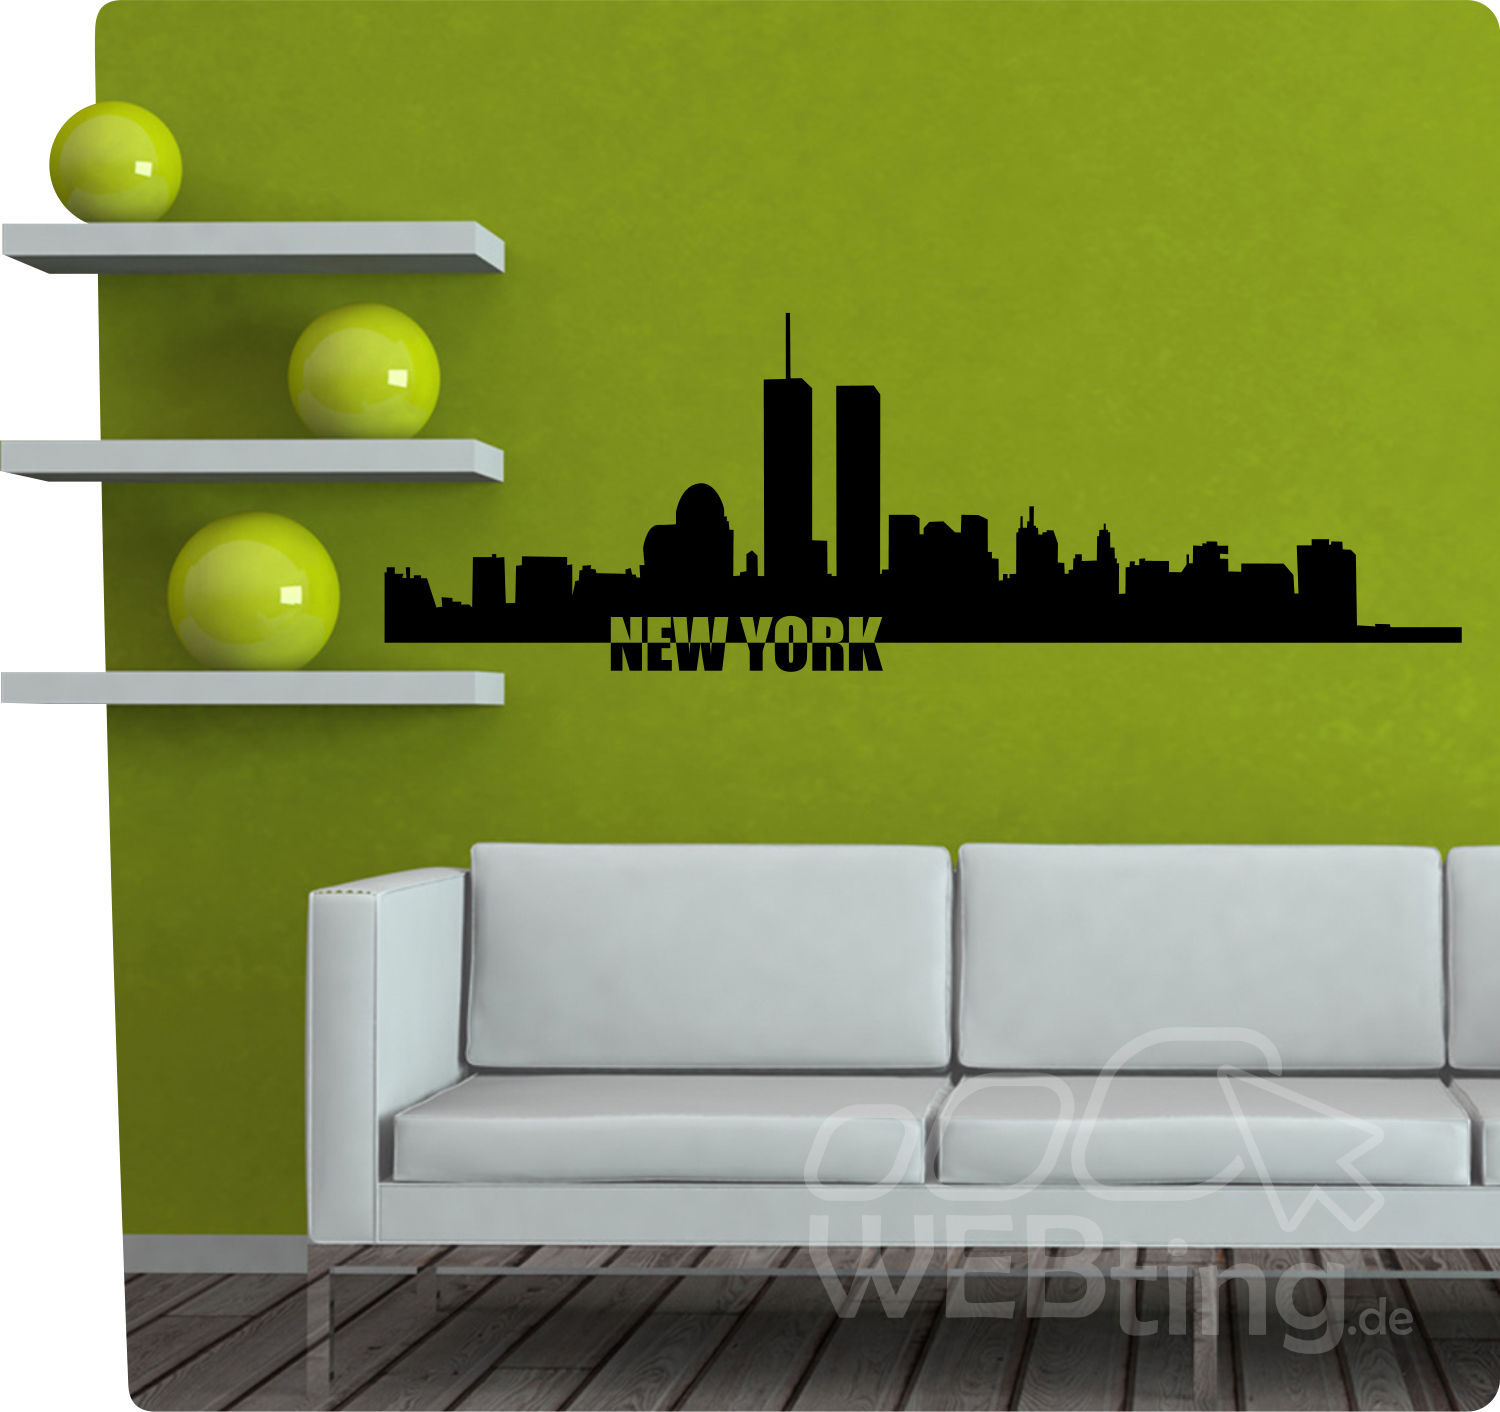 xxl wandtattoo skyline new york usa wandaufkleber aufkleber sticker deko. Black Bedroom Furniture Sets. Home Design Ideas